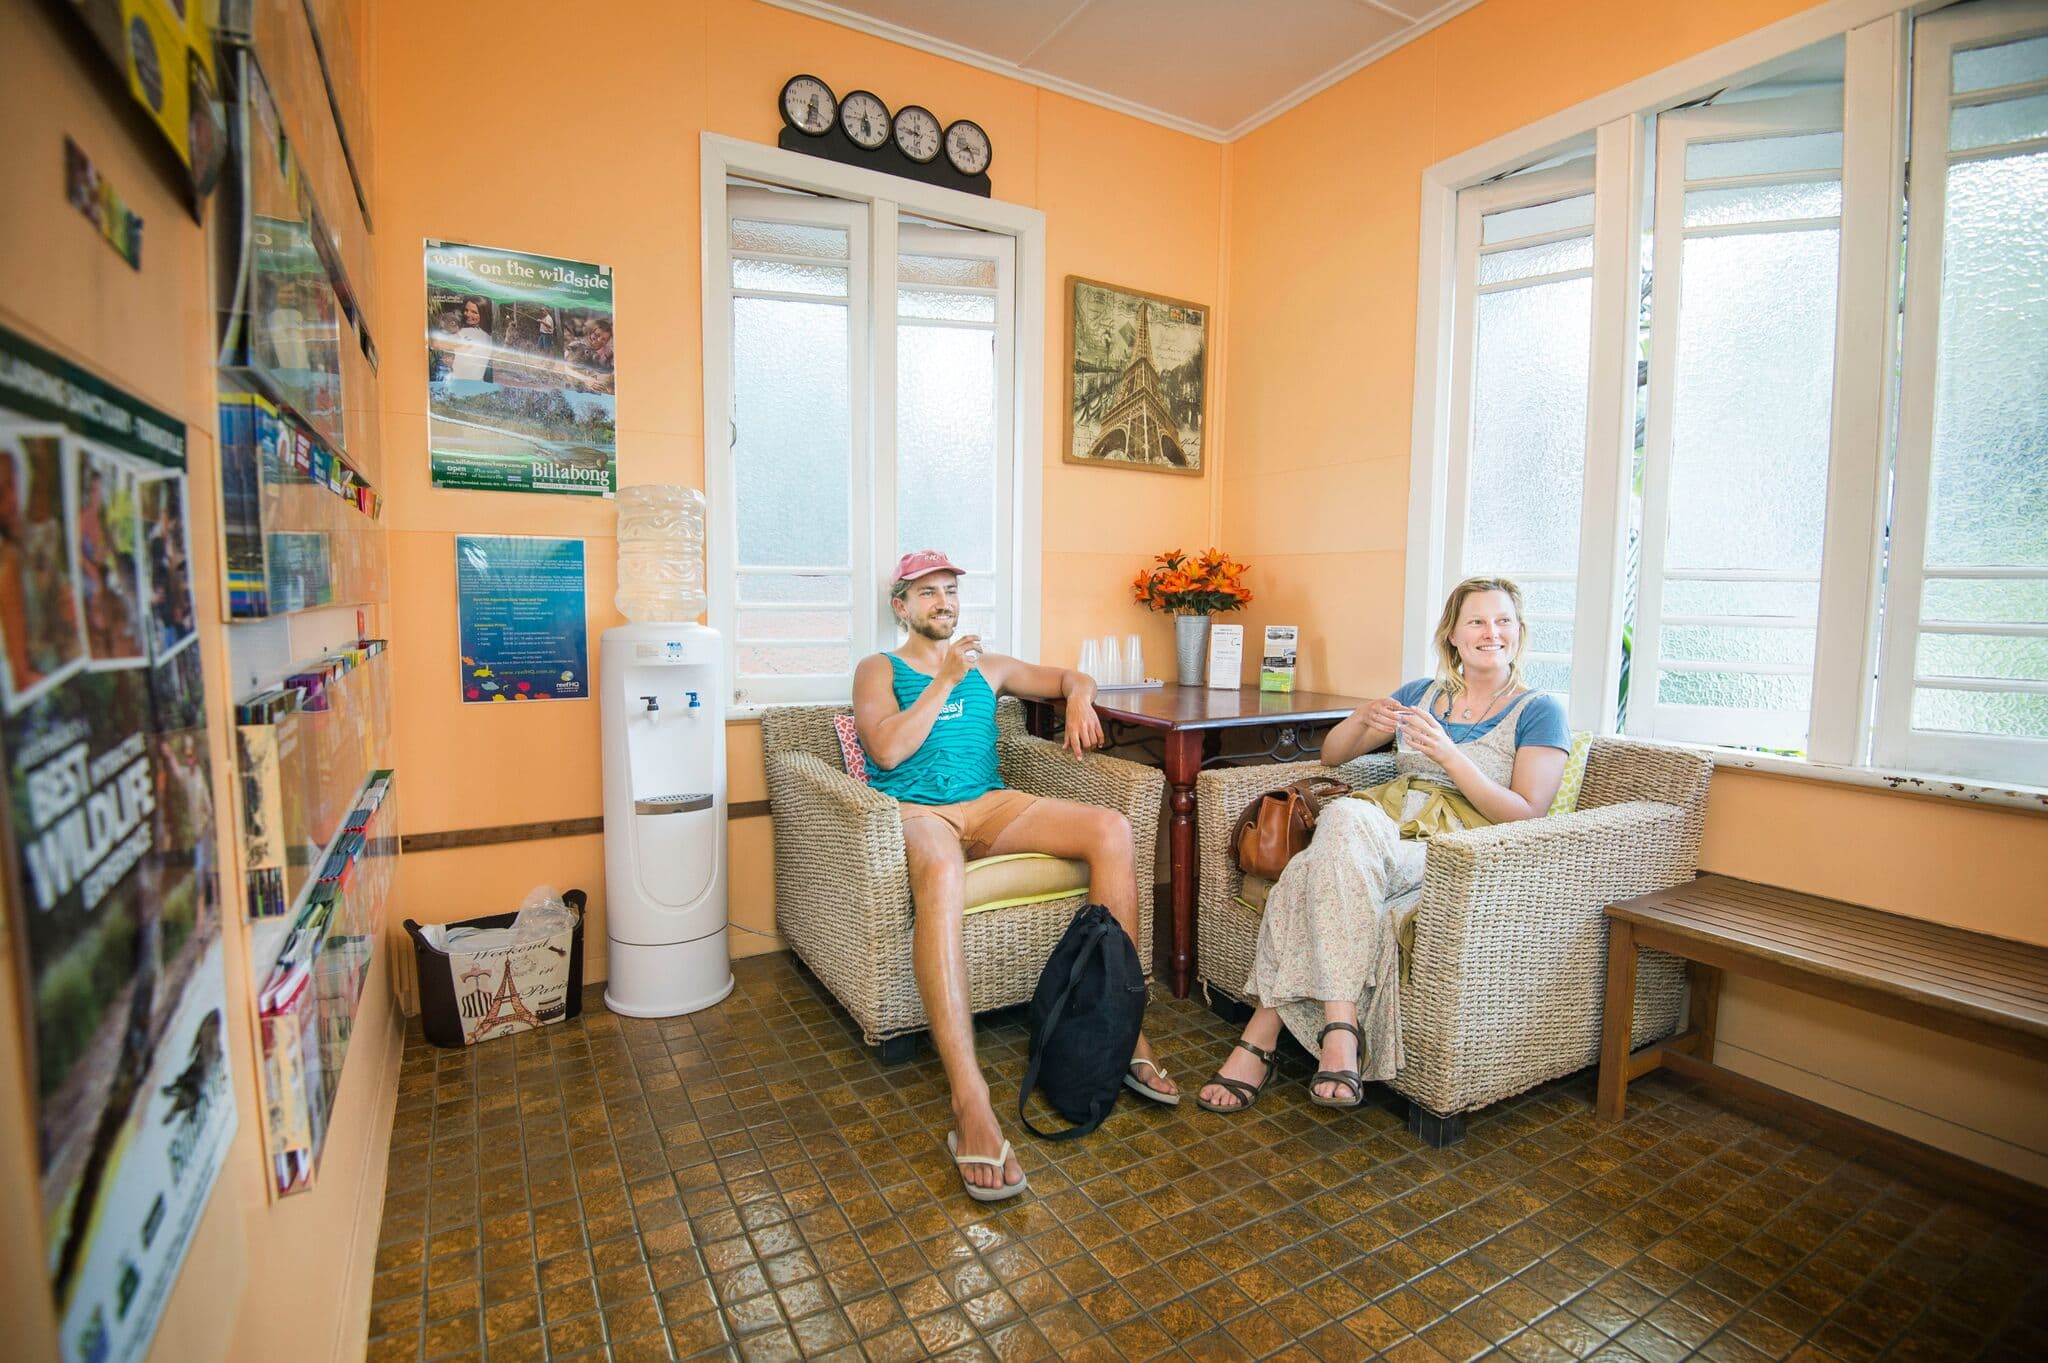 Civic Guest House Backpackers Hostel